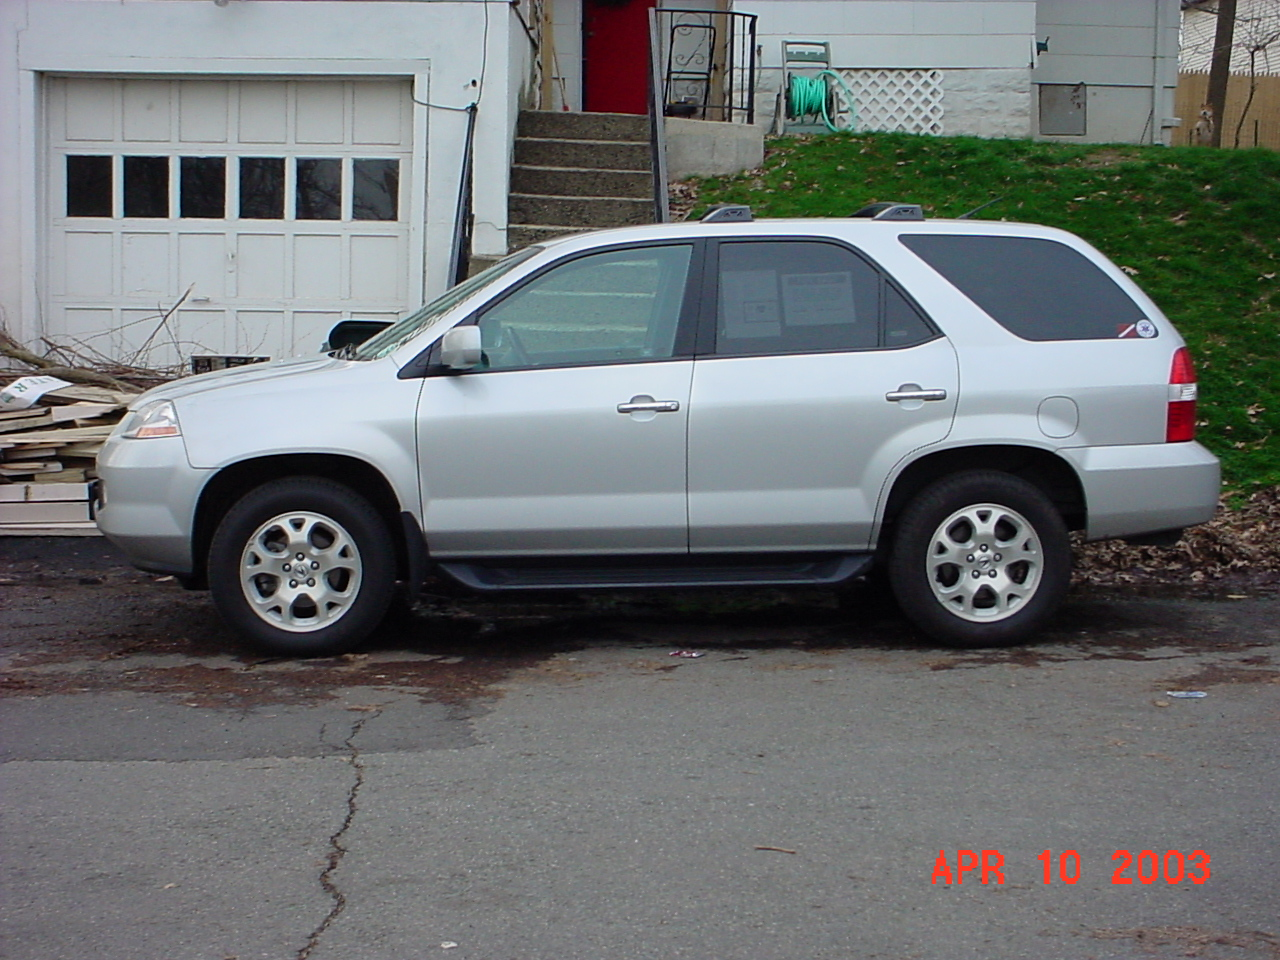 2002 Acura MDX - Pictures - 2002 Acura MDX Touring picture ...